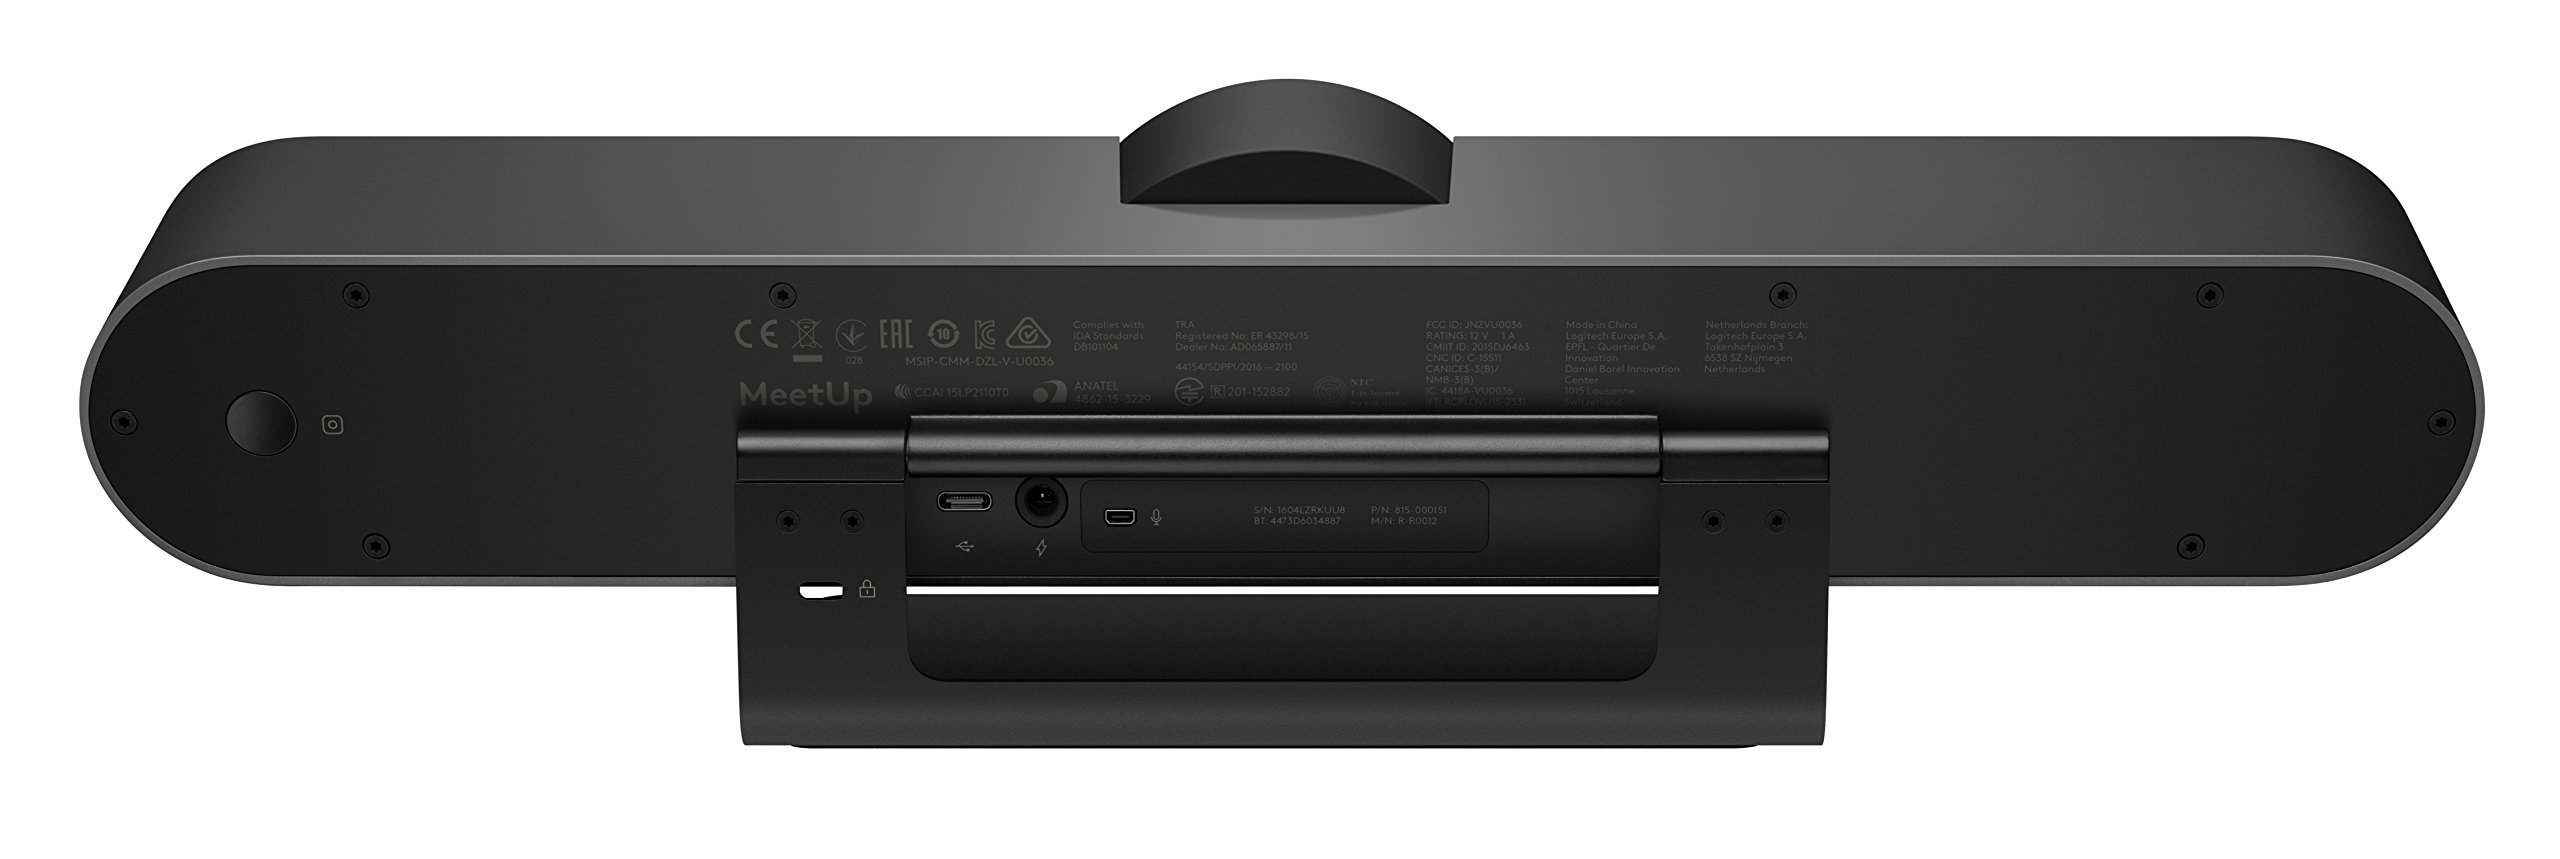 Logitech 960-001101 MeetUp HD Video and Audio Conferencing System for Small Meeting Rooms by Logitech (Image #4)